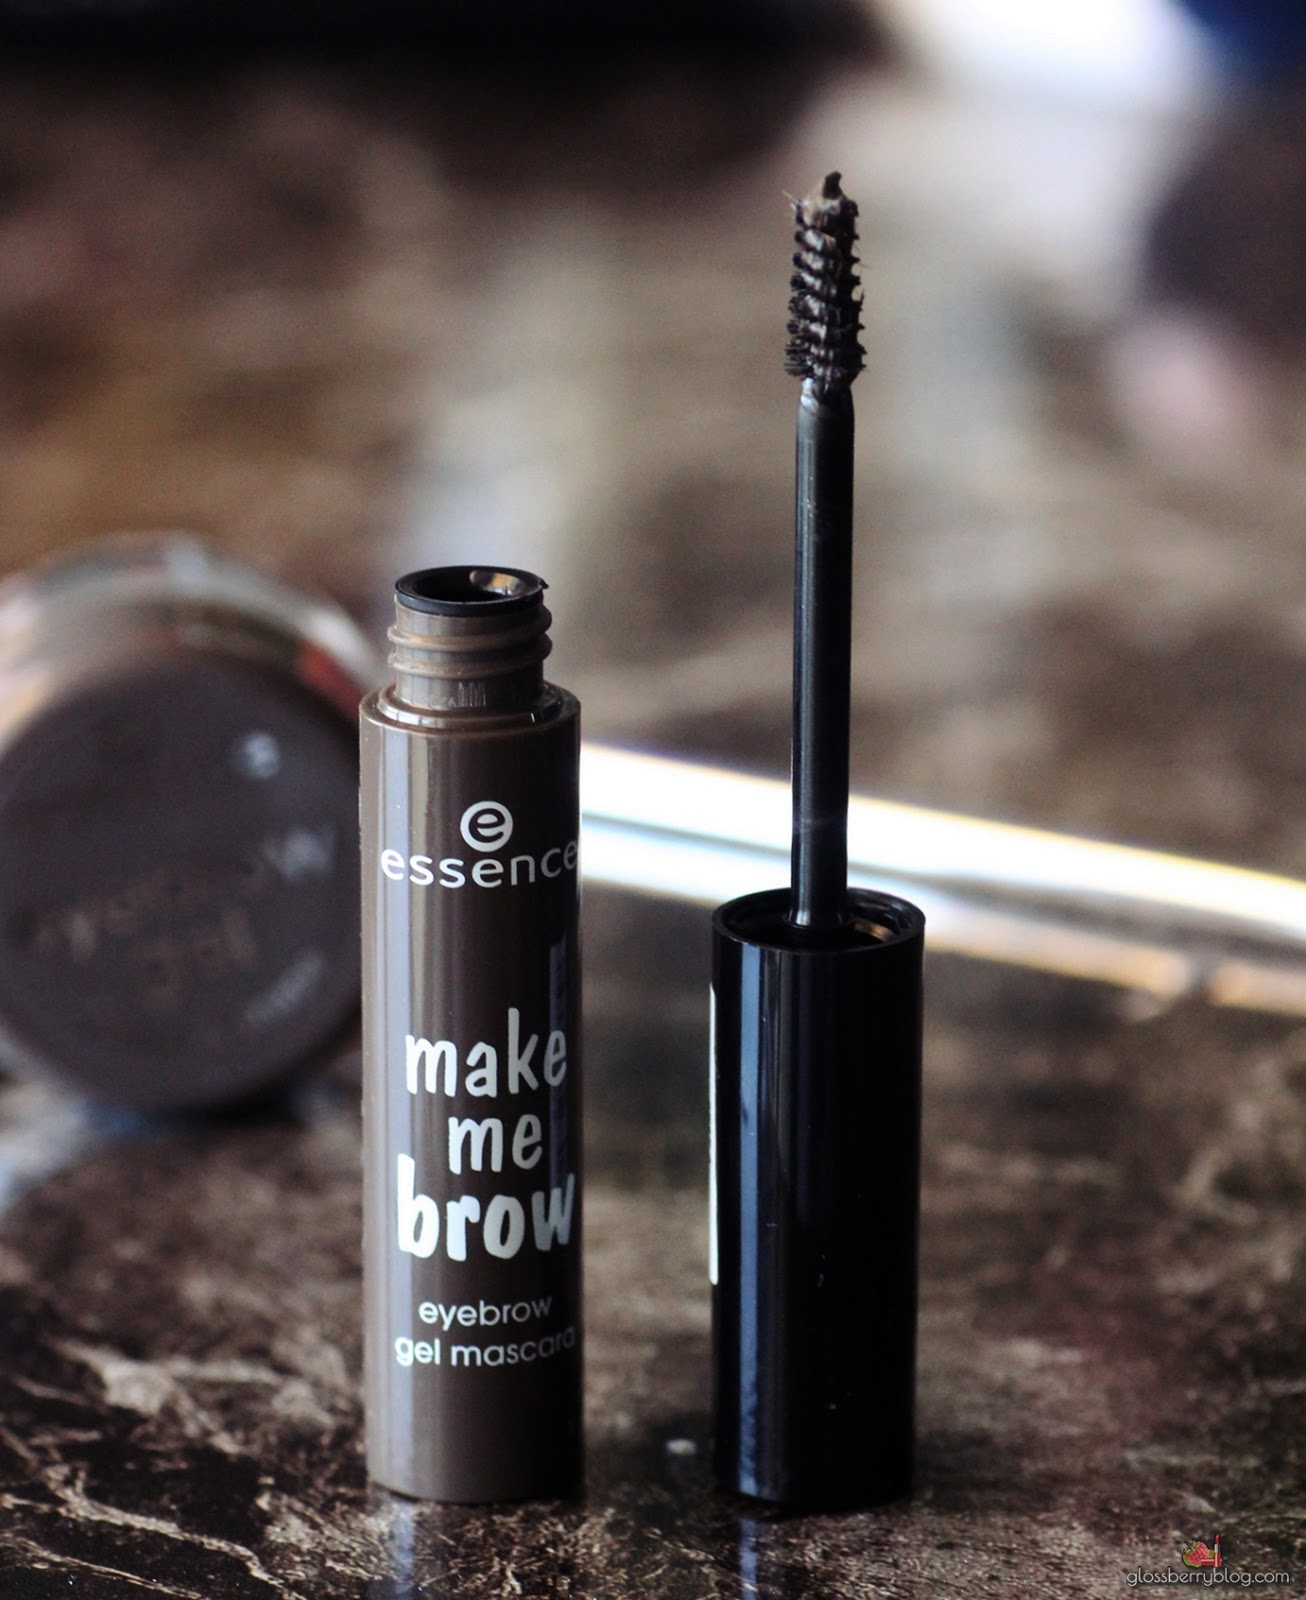 Essence - Make Me Brow Mascara and Brow Gel review swatches ג'ל מסקרה גבות אסנס חום סקירה המלצה גלוסברי בלוג איפור וטיפוח brown browny